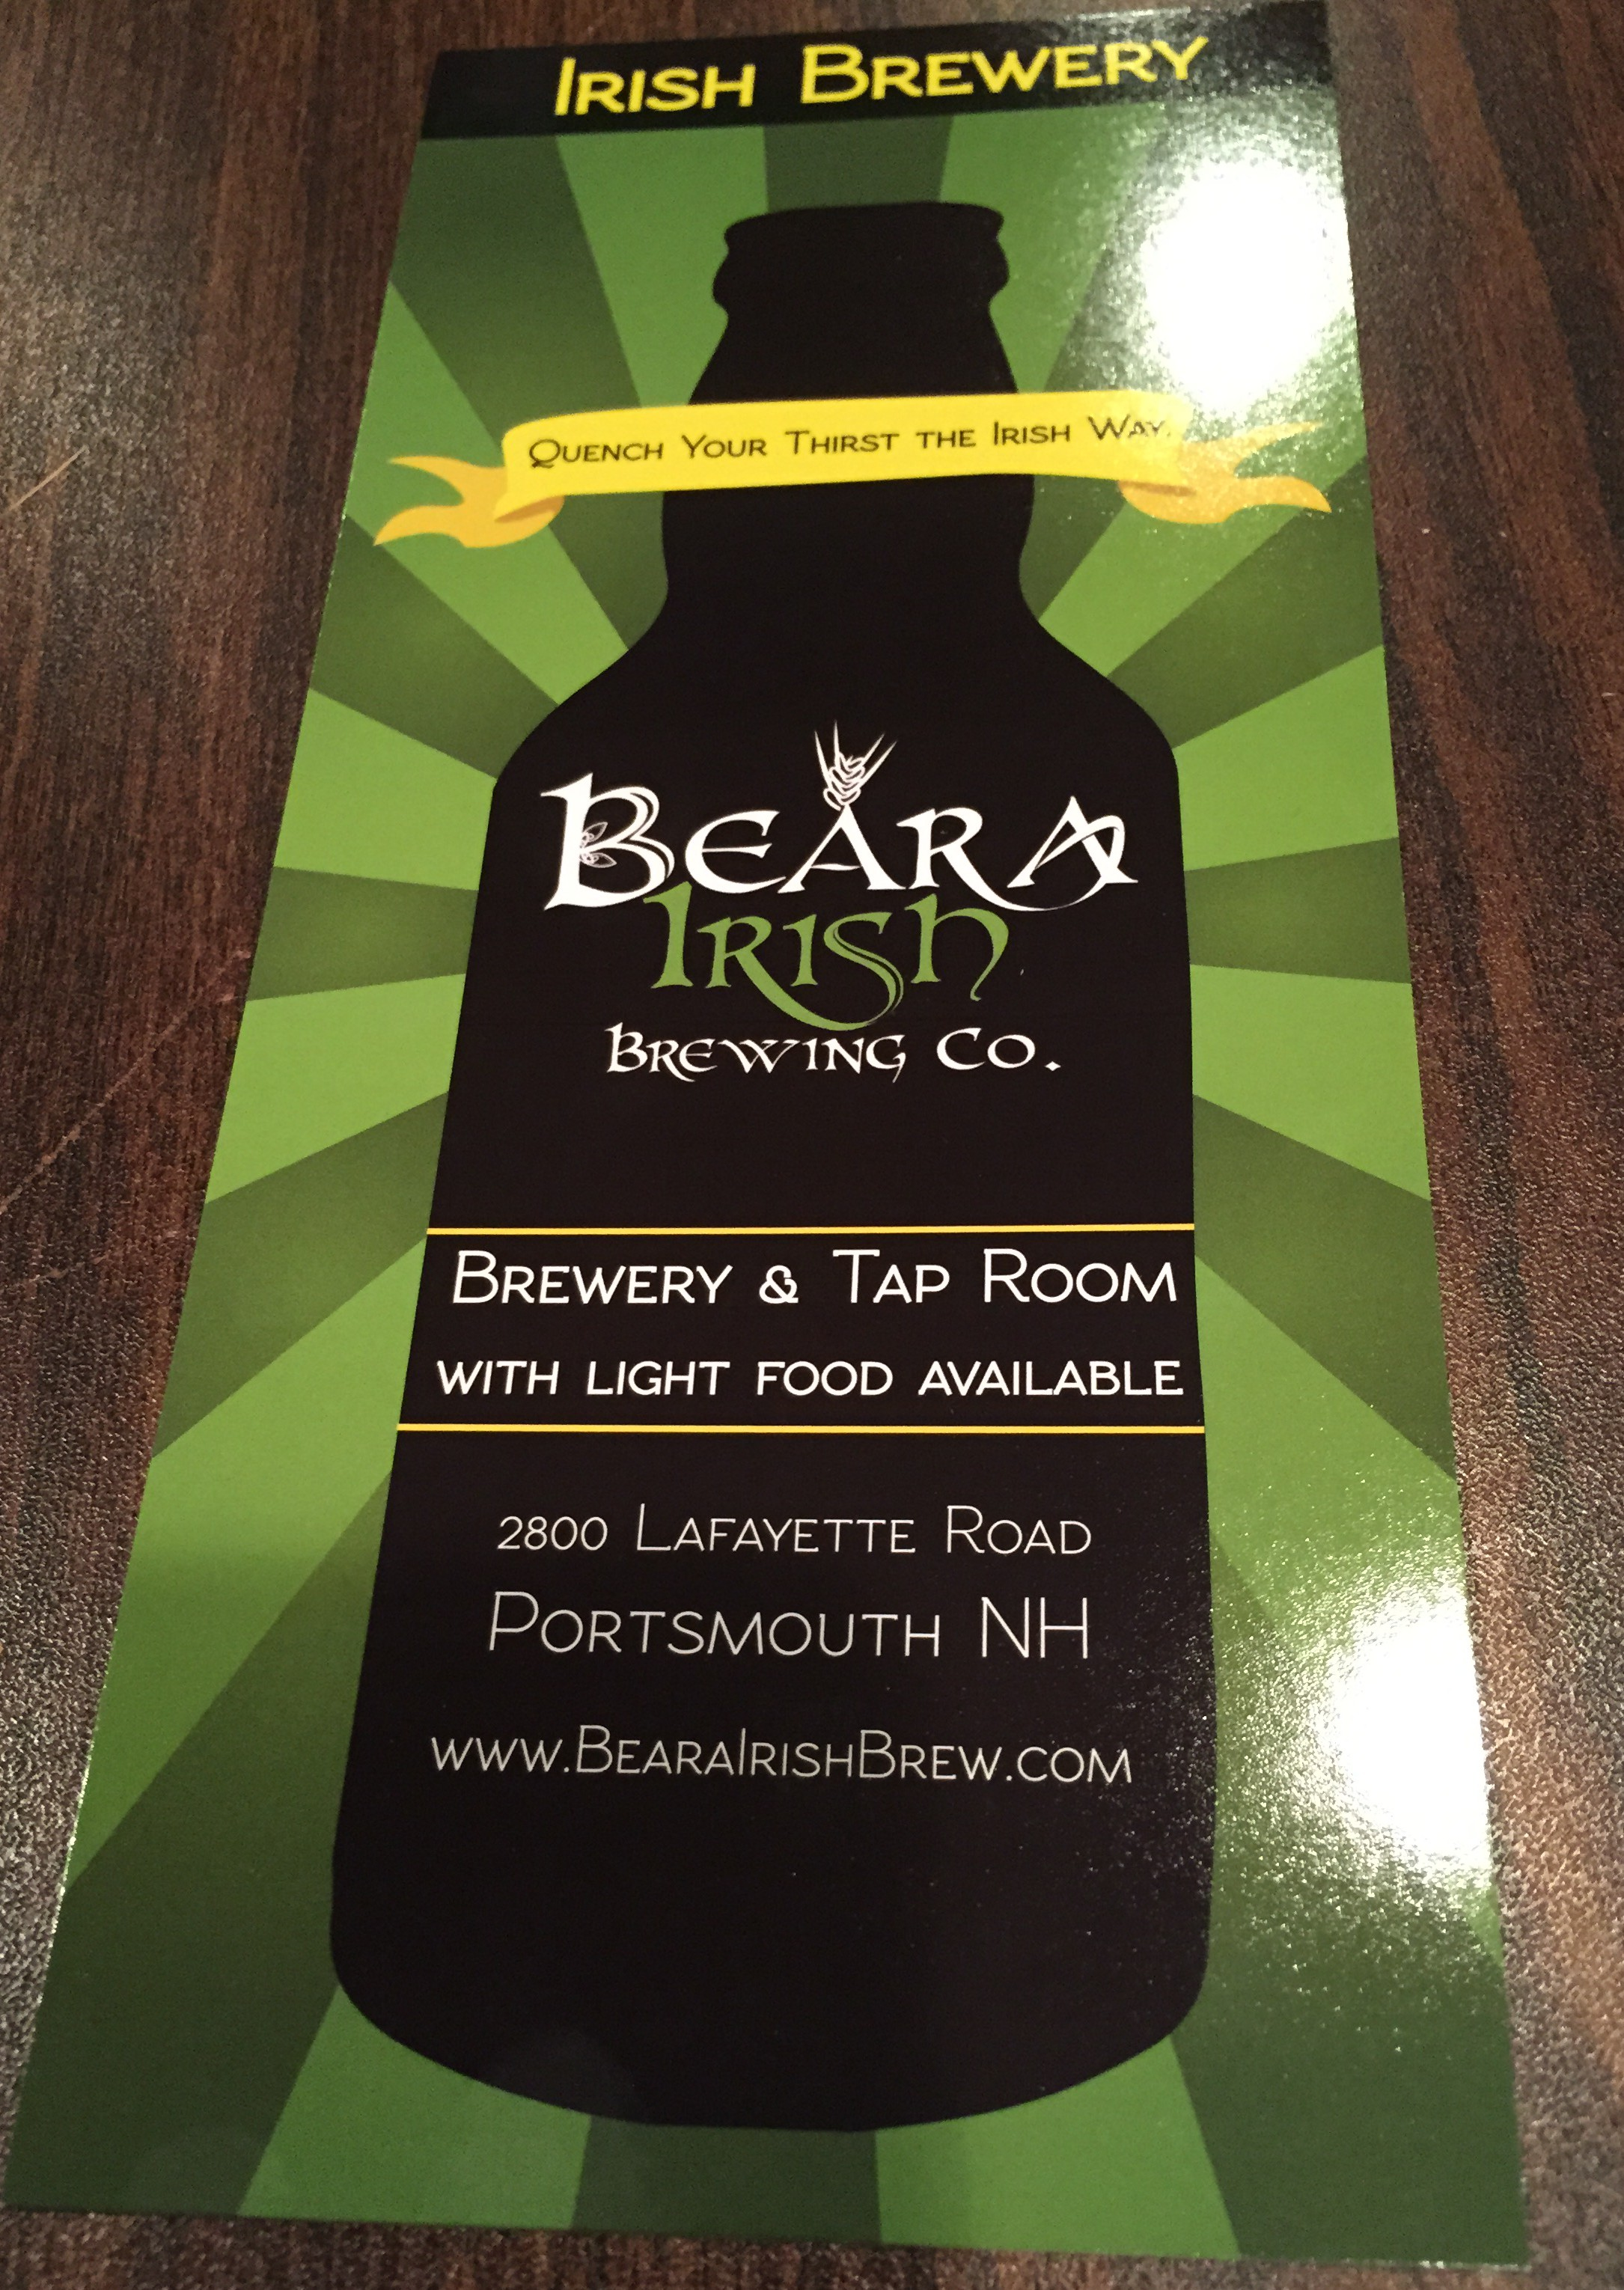 Beara irish brewing portsmouth nh breweries wineries for Michaels crafts newington nh